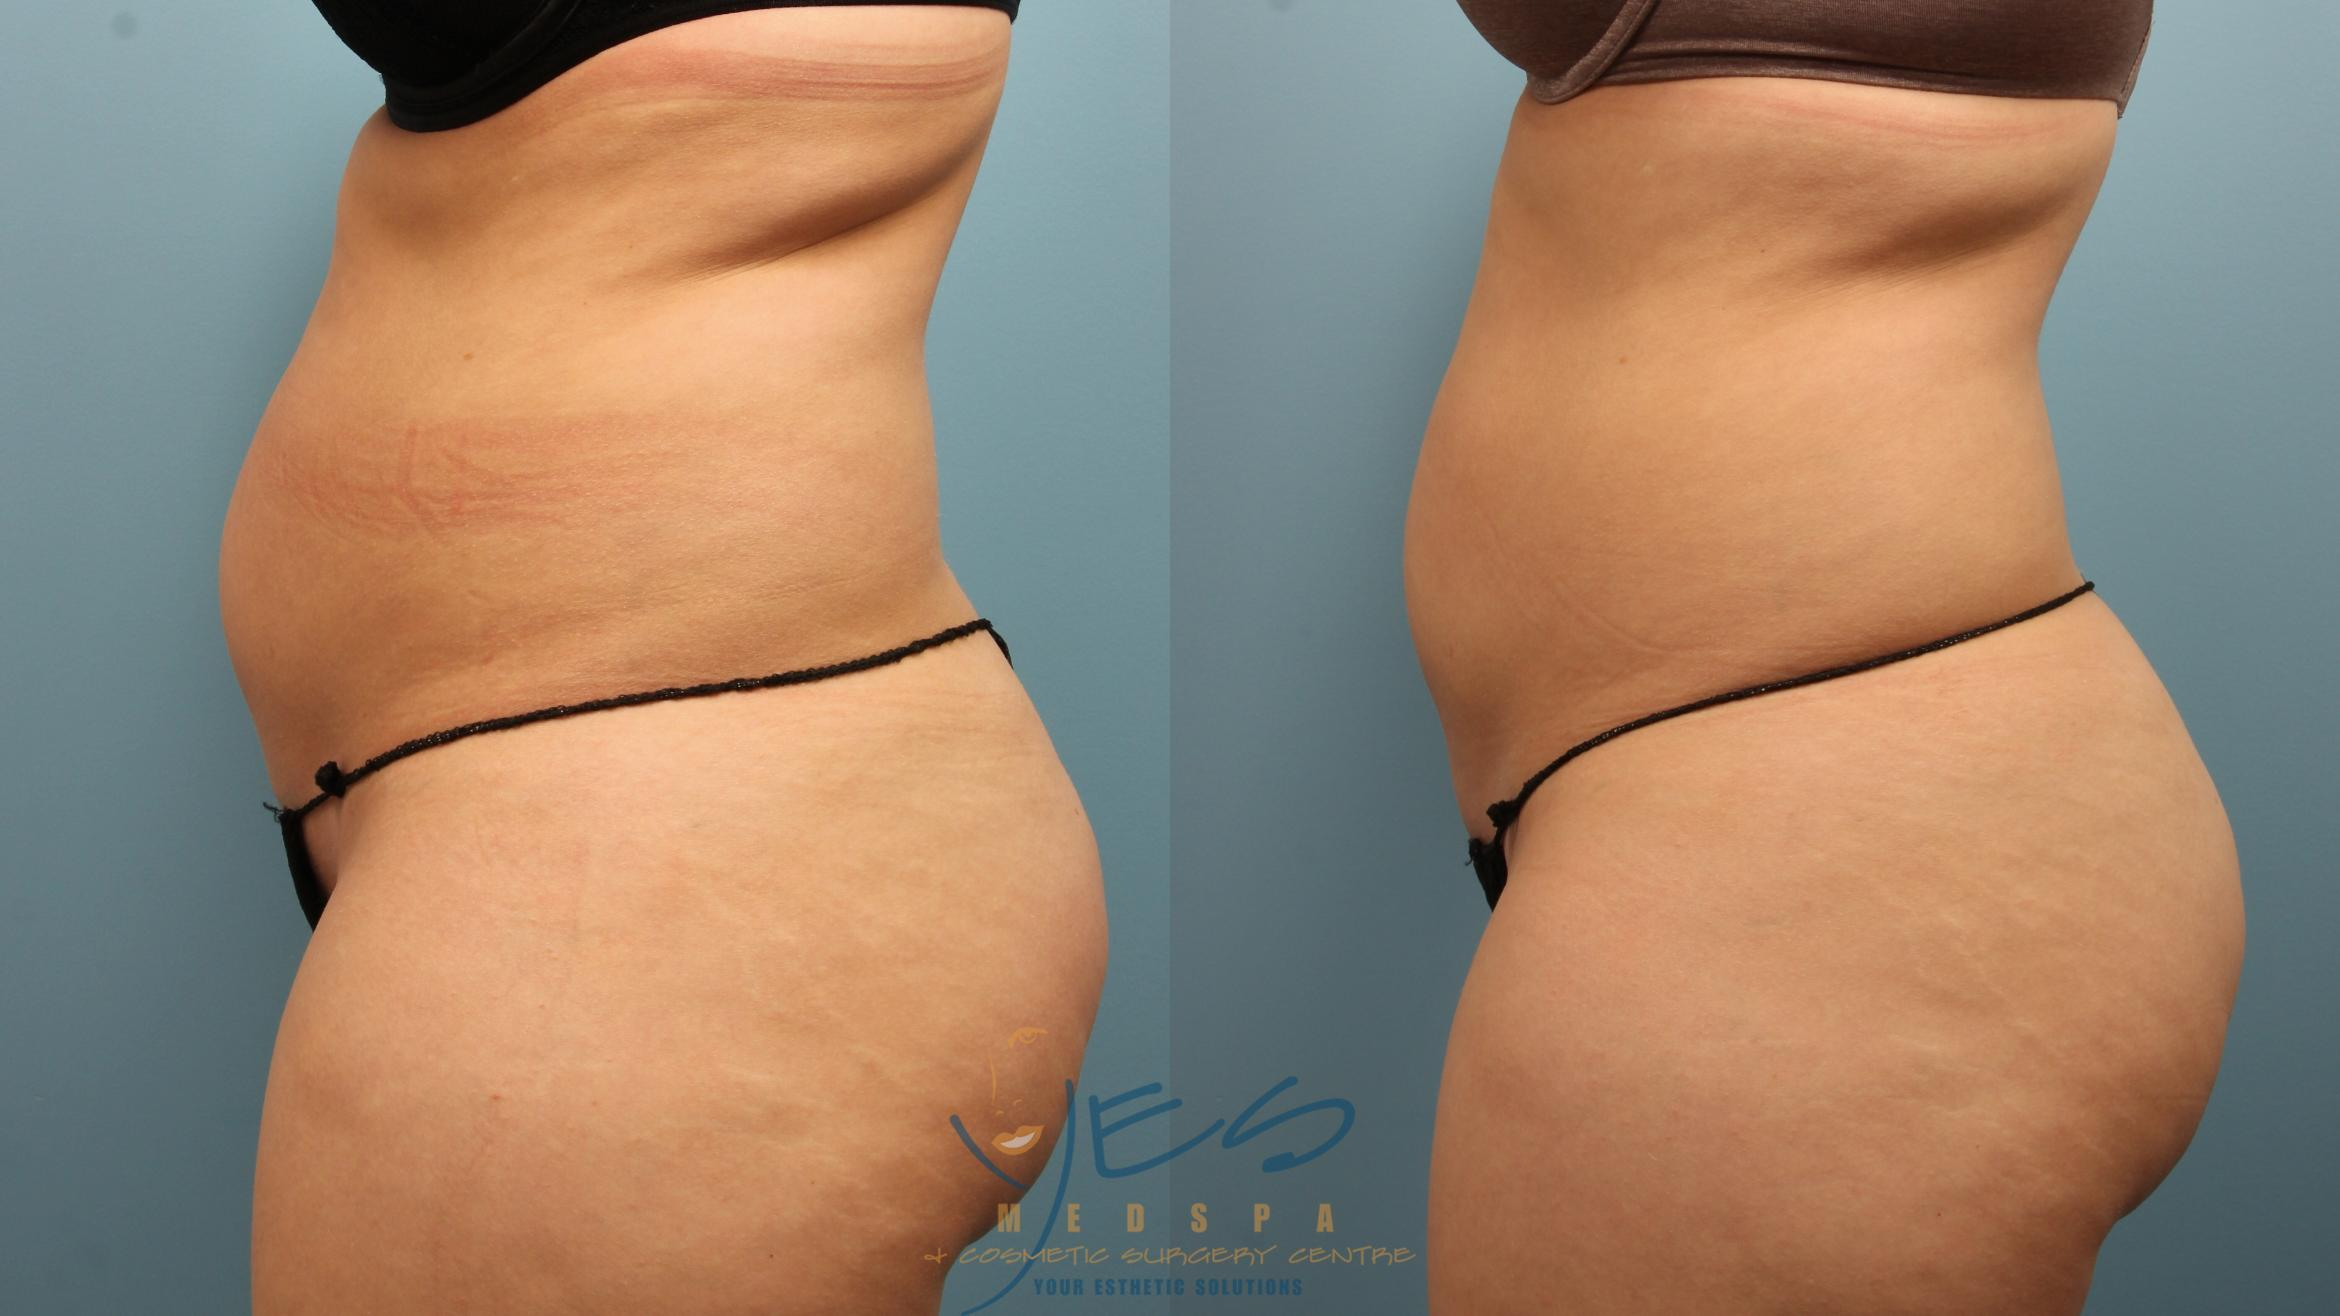 EVOLVE - TRIM Case 332 Before & After Left Side | Vancouver, BC | YES Medspa & Cosmetic Surgery Centre